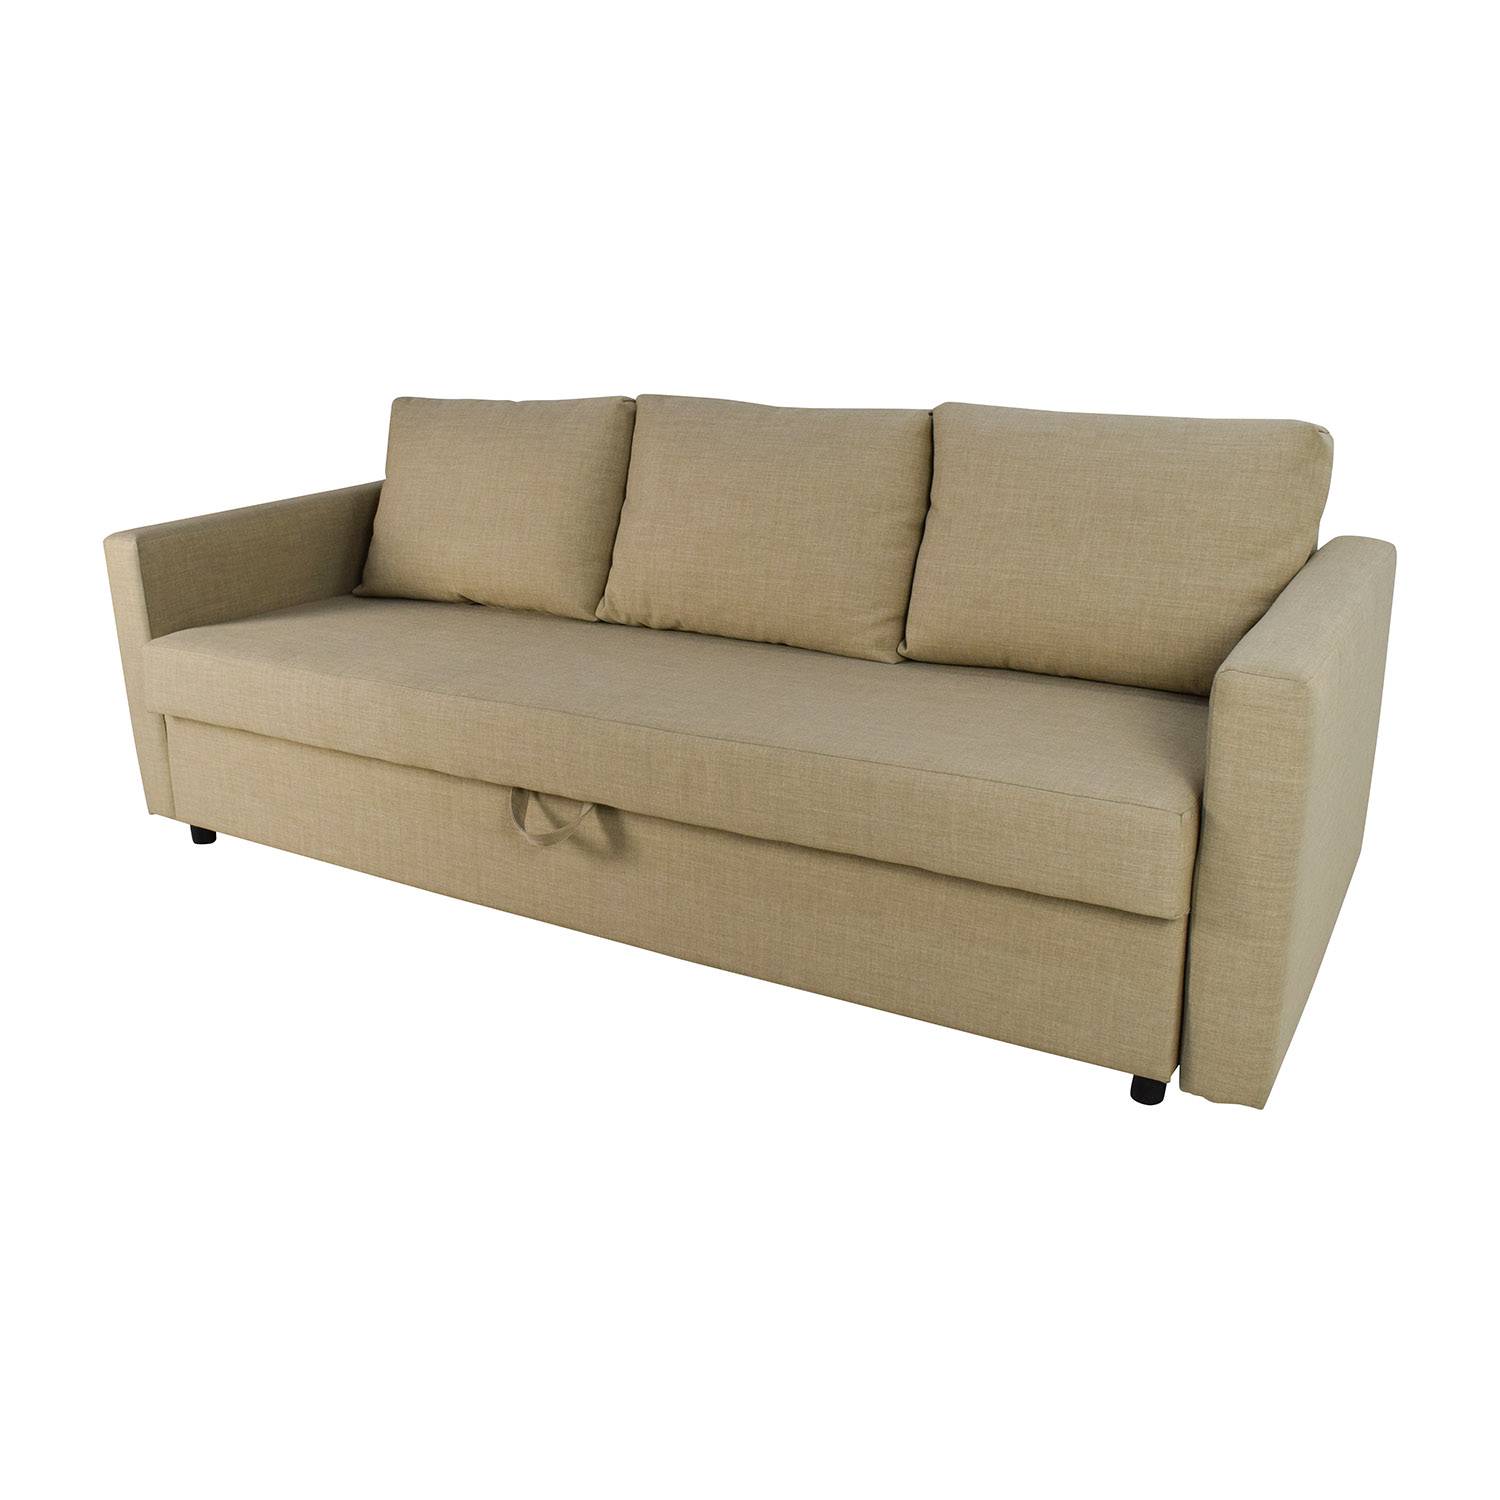 62 off ikea friheten sleeper sofa with storage sofas - Ikea sofa friheten ...